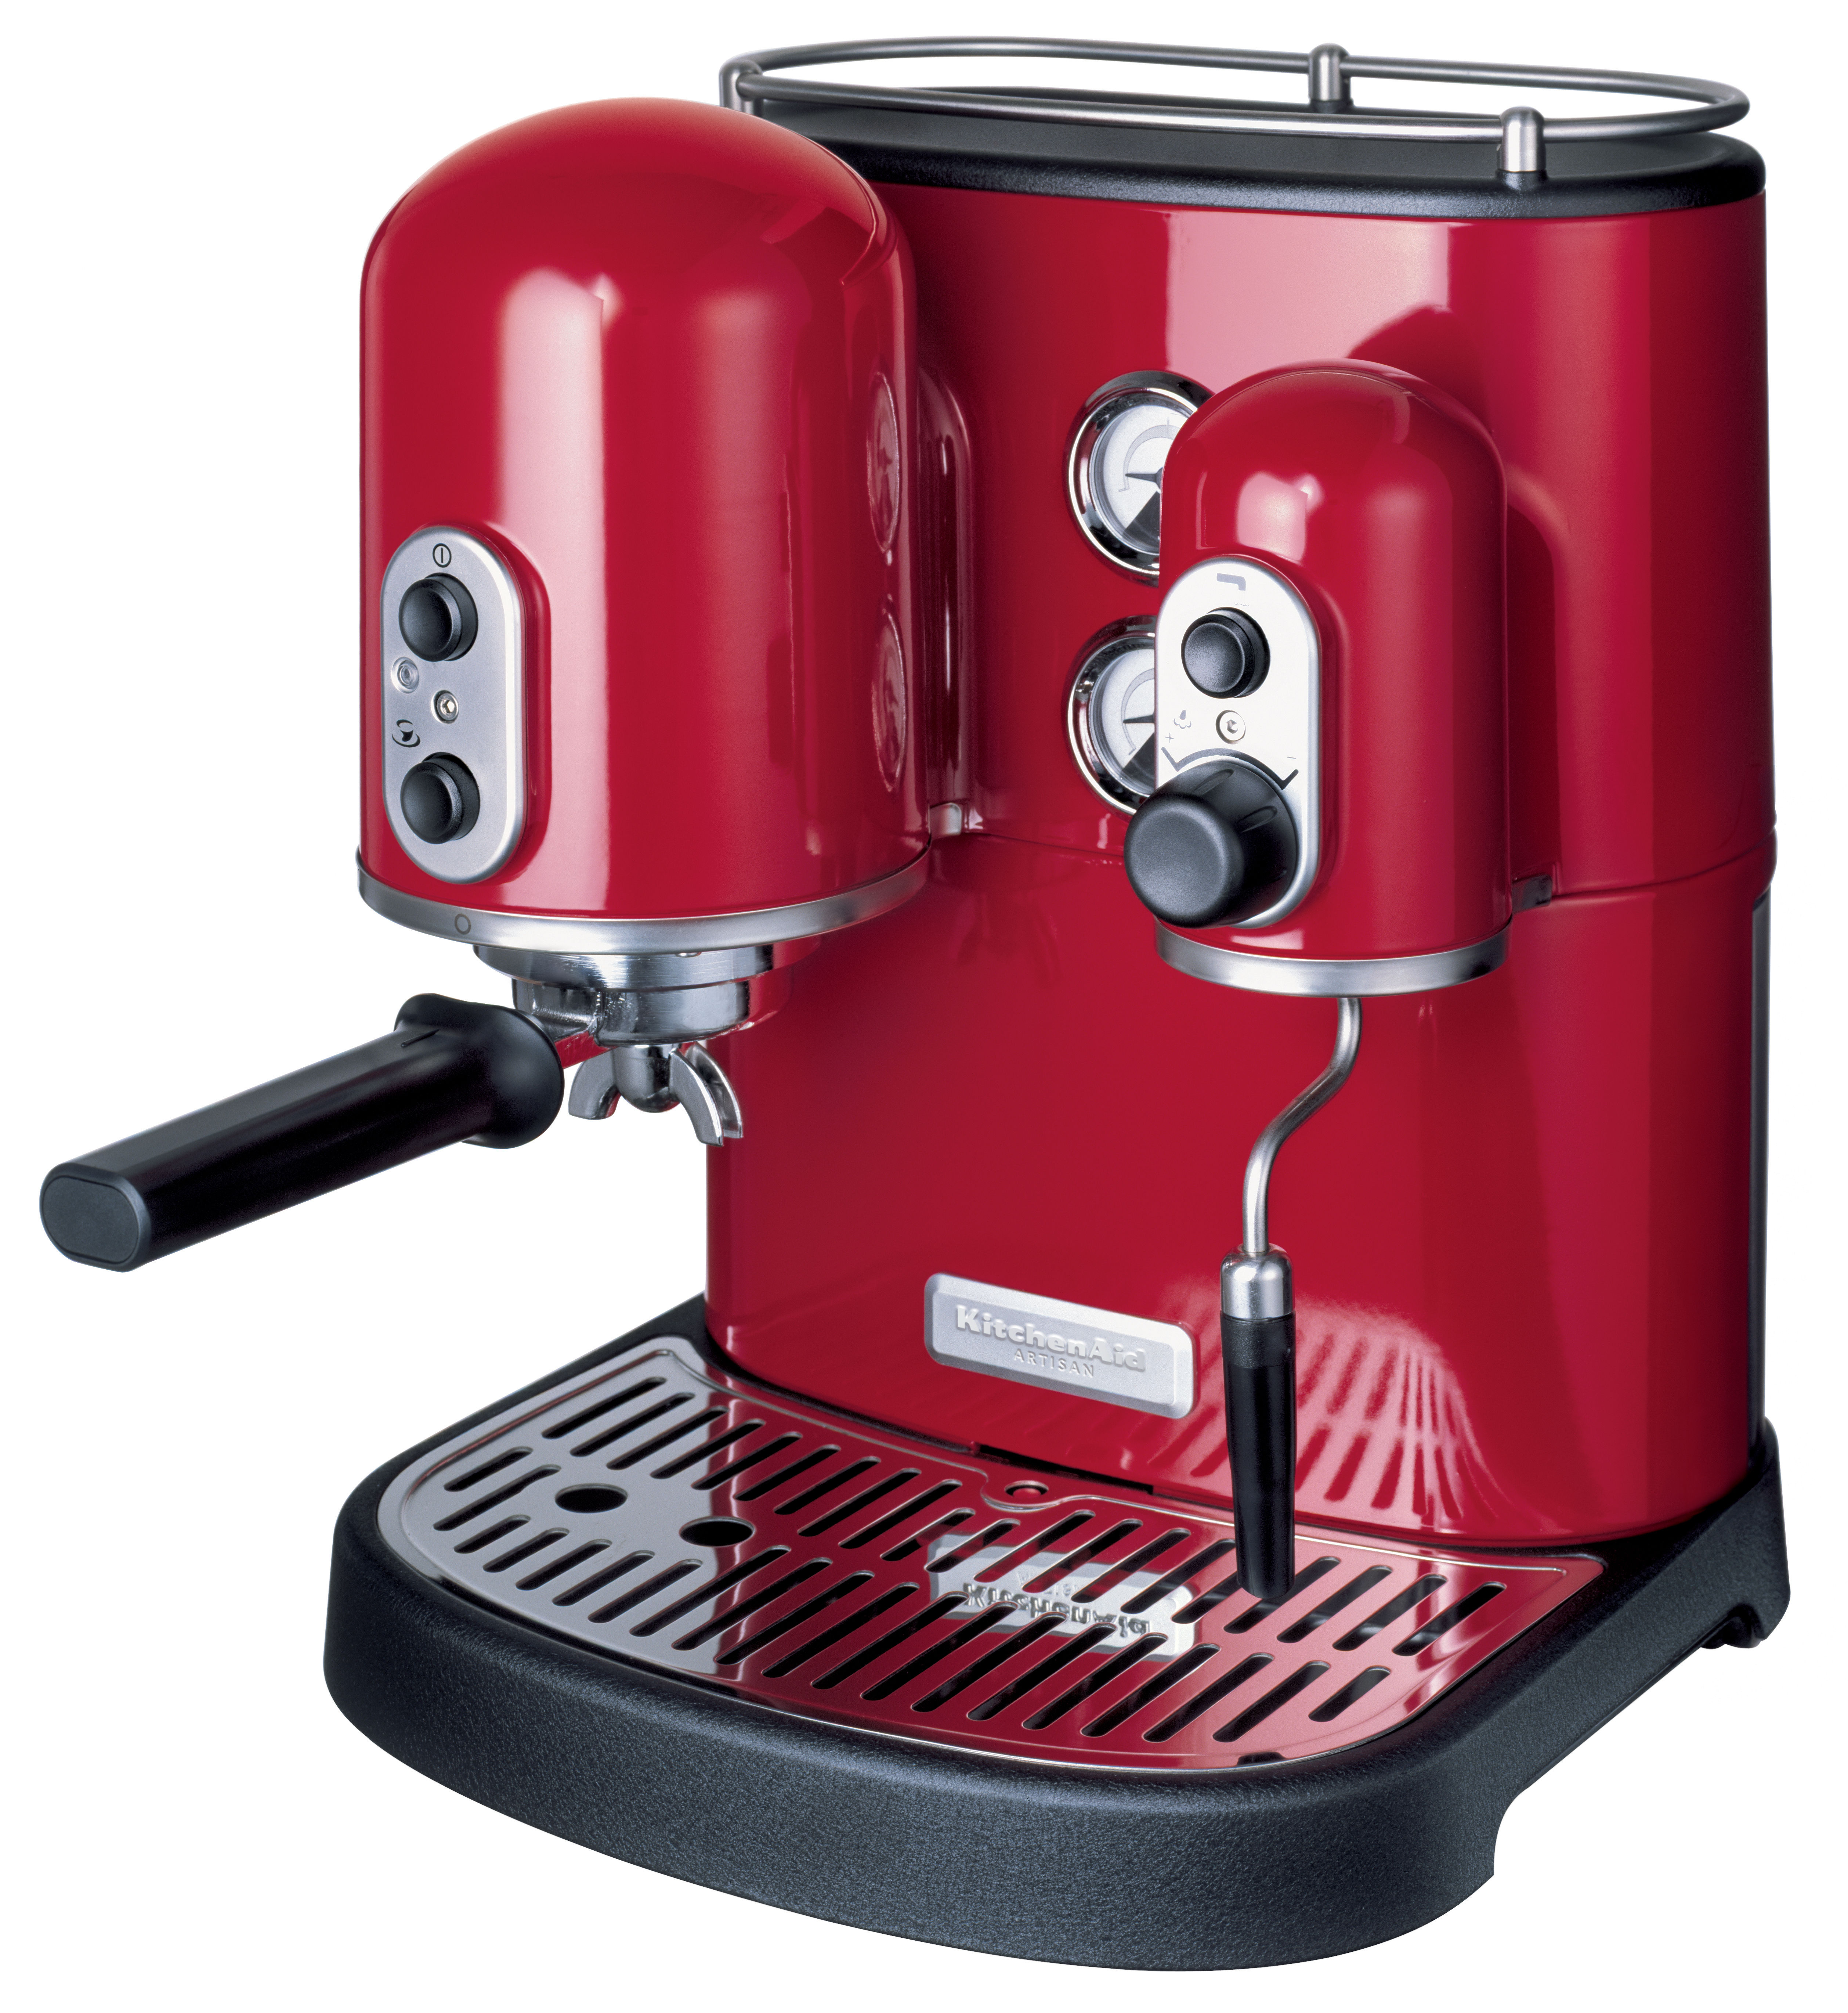 cafeti re expresso artisan pour dosettes et caf moulu rouge empire kitchenaid. Black Bedroom Furniture Sets. Home Design Ideas